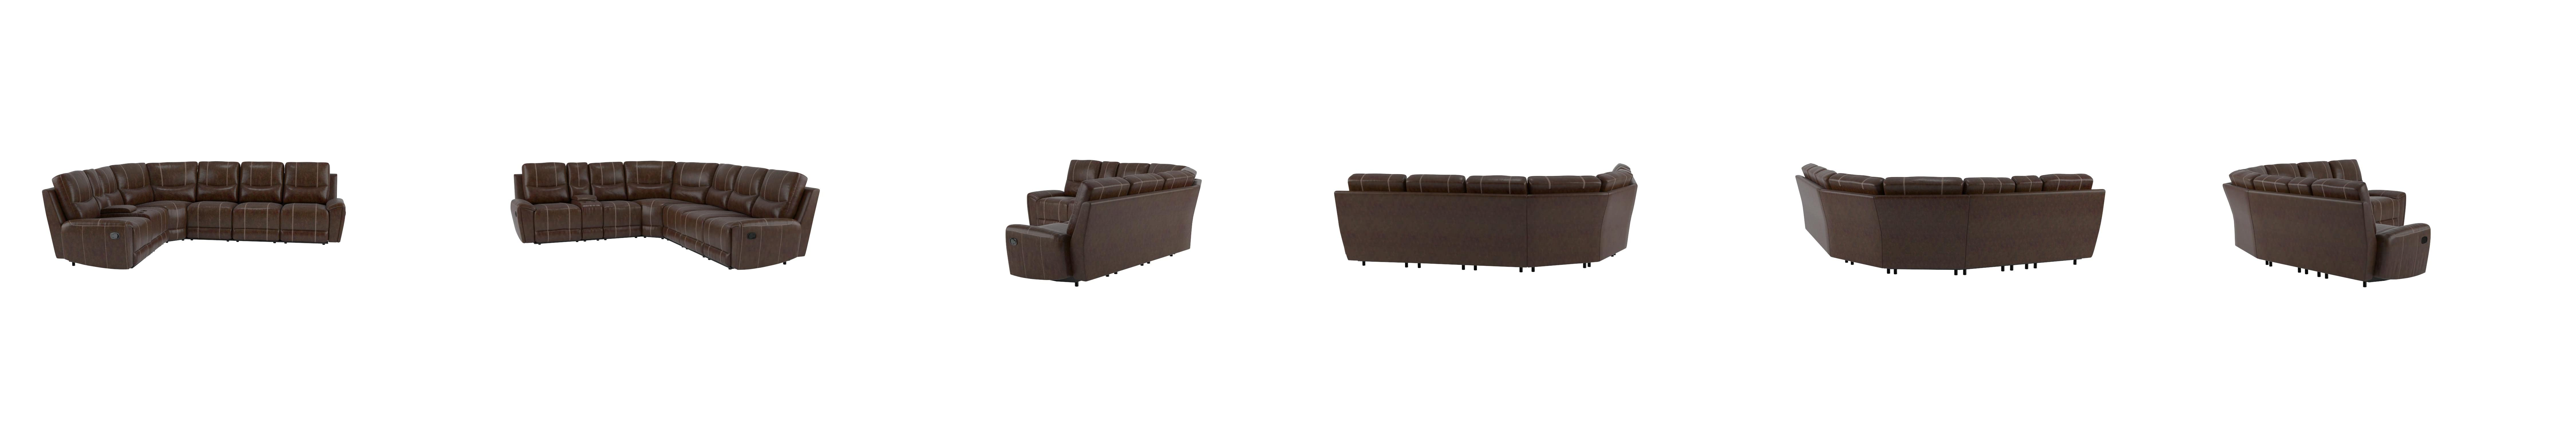 Amazon Homelegance 4 Piece Bonded Leather Sectional Reclining